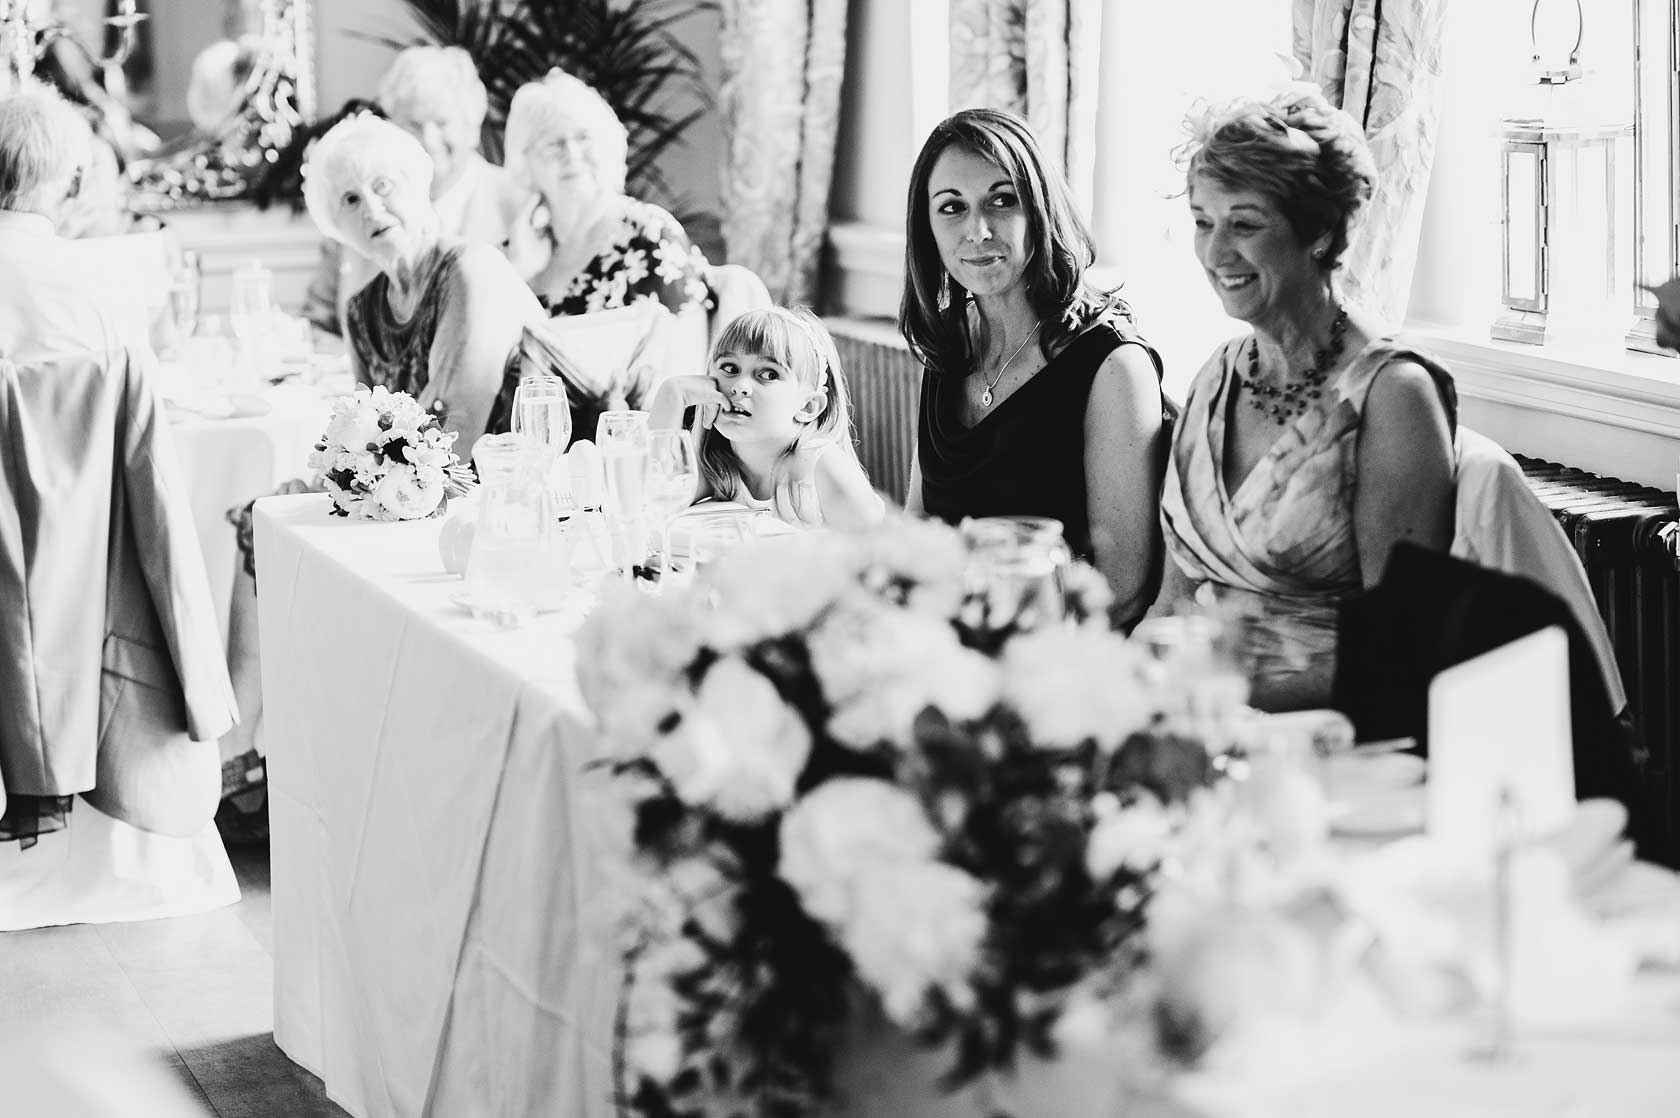 Reportage Wedding Photography in Clitheroe